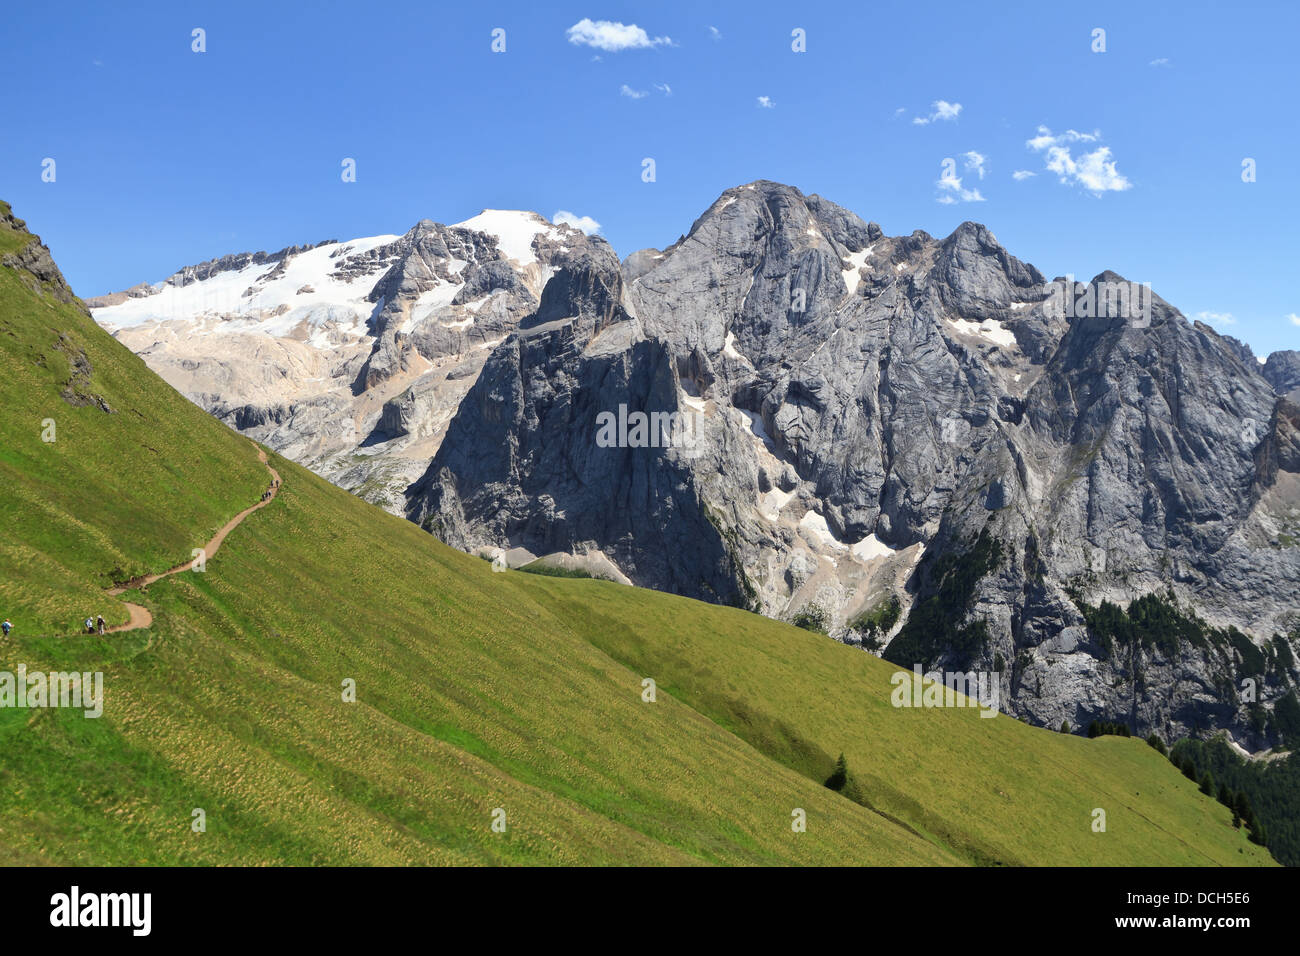 Dolomiti - summer view of mount Marmolada, Trentino, Italy Stock Photo